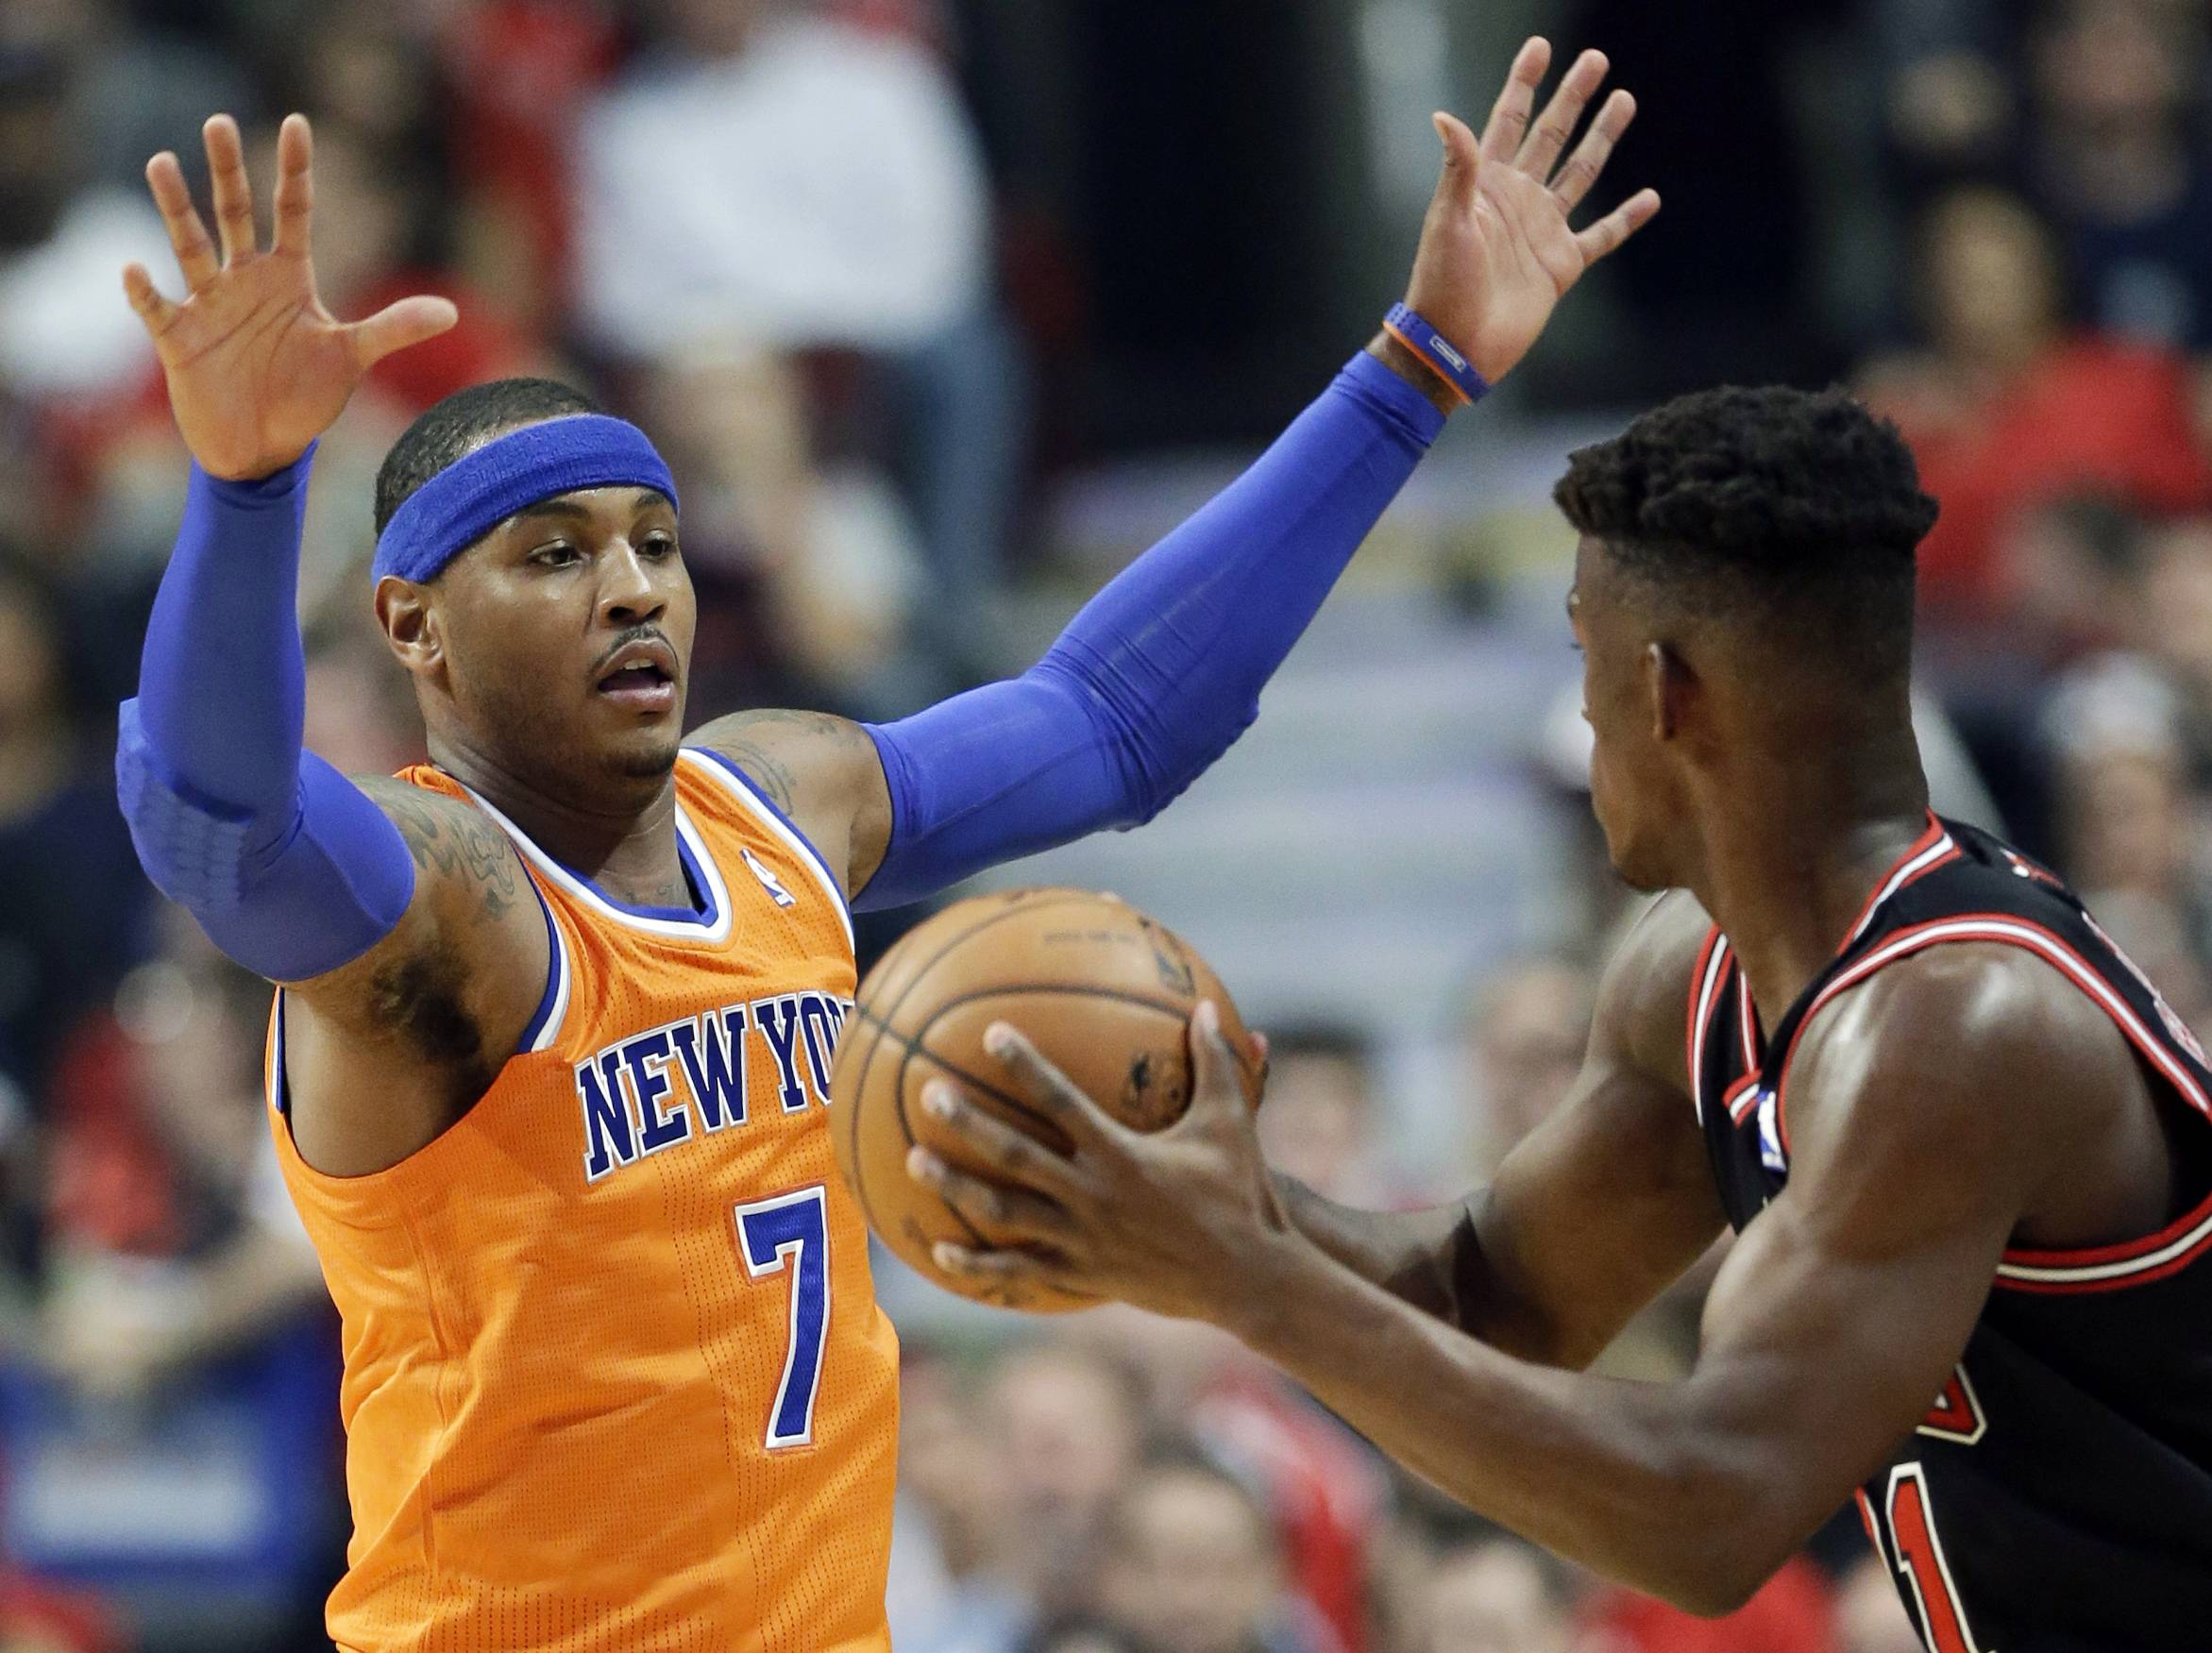 While the Chicago Bulls have a strong interest in forward Carmelo Anthony, it appears the Miami Heat also has a plan to convince Anthony to join them.